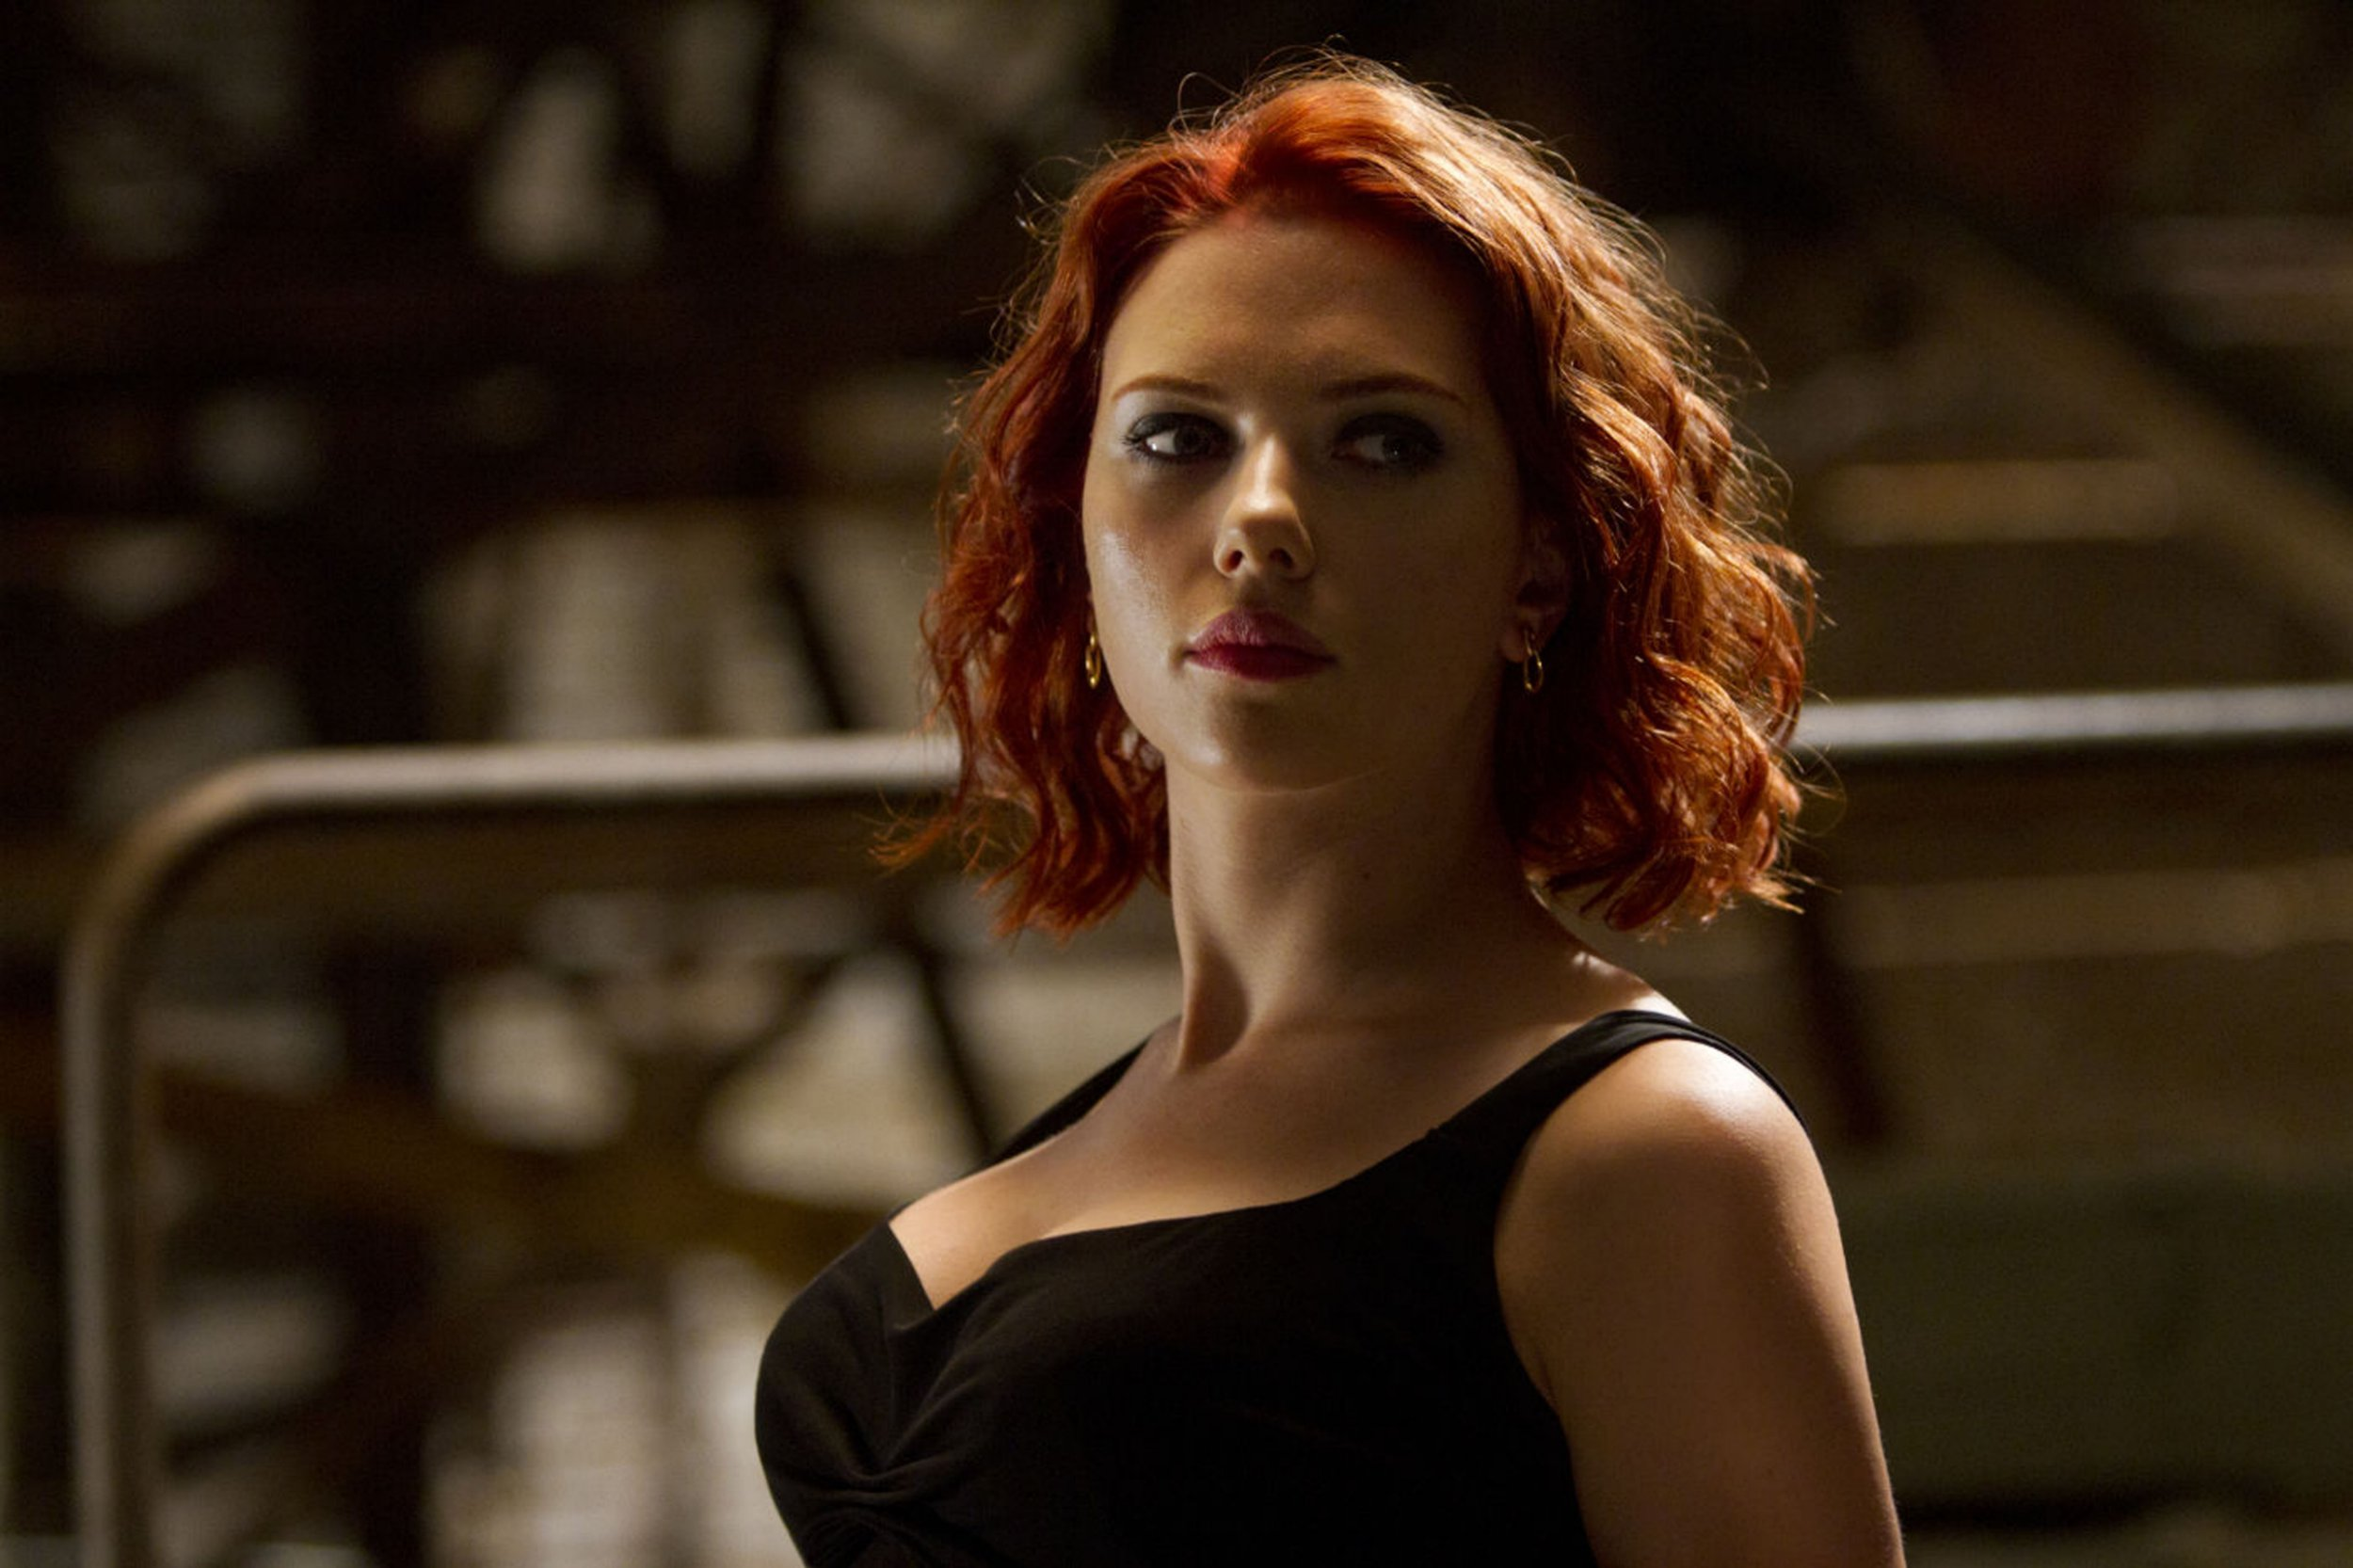 Scarlett Johansson wasn't ready for Avengers Endgame response as she didn't know trailer was being released